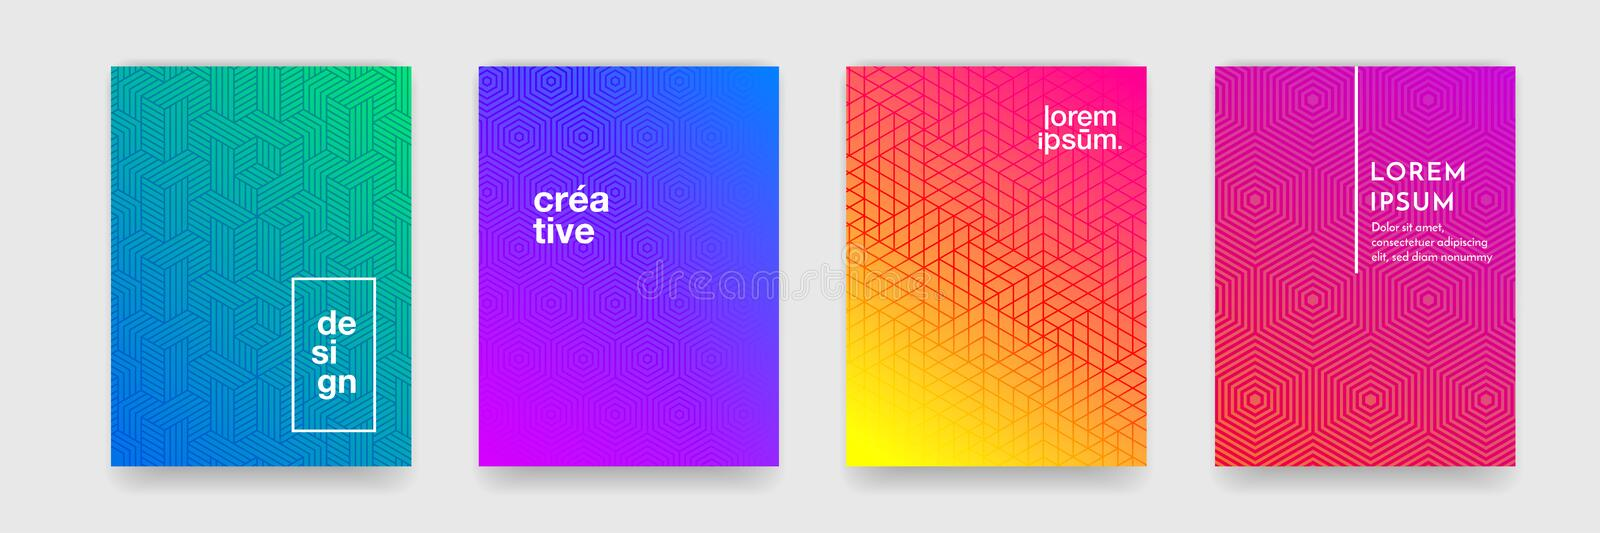 Abstract geometric pattern background with line texture for business brochure cover design poster template. Abstract geometric pattern background with line vector illustration